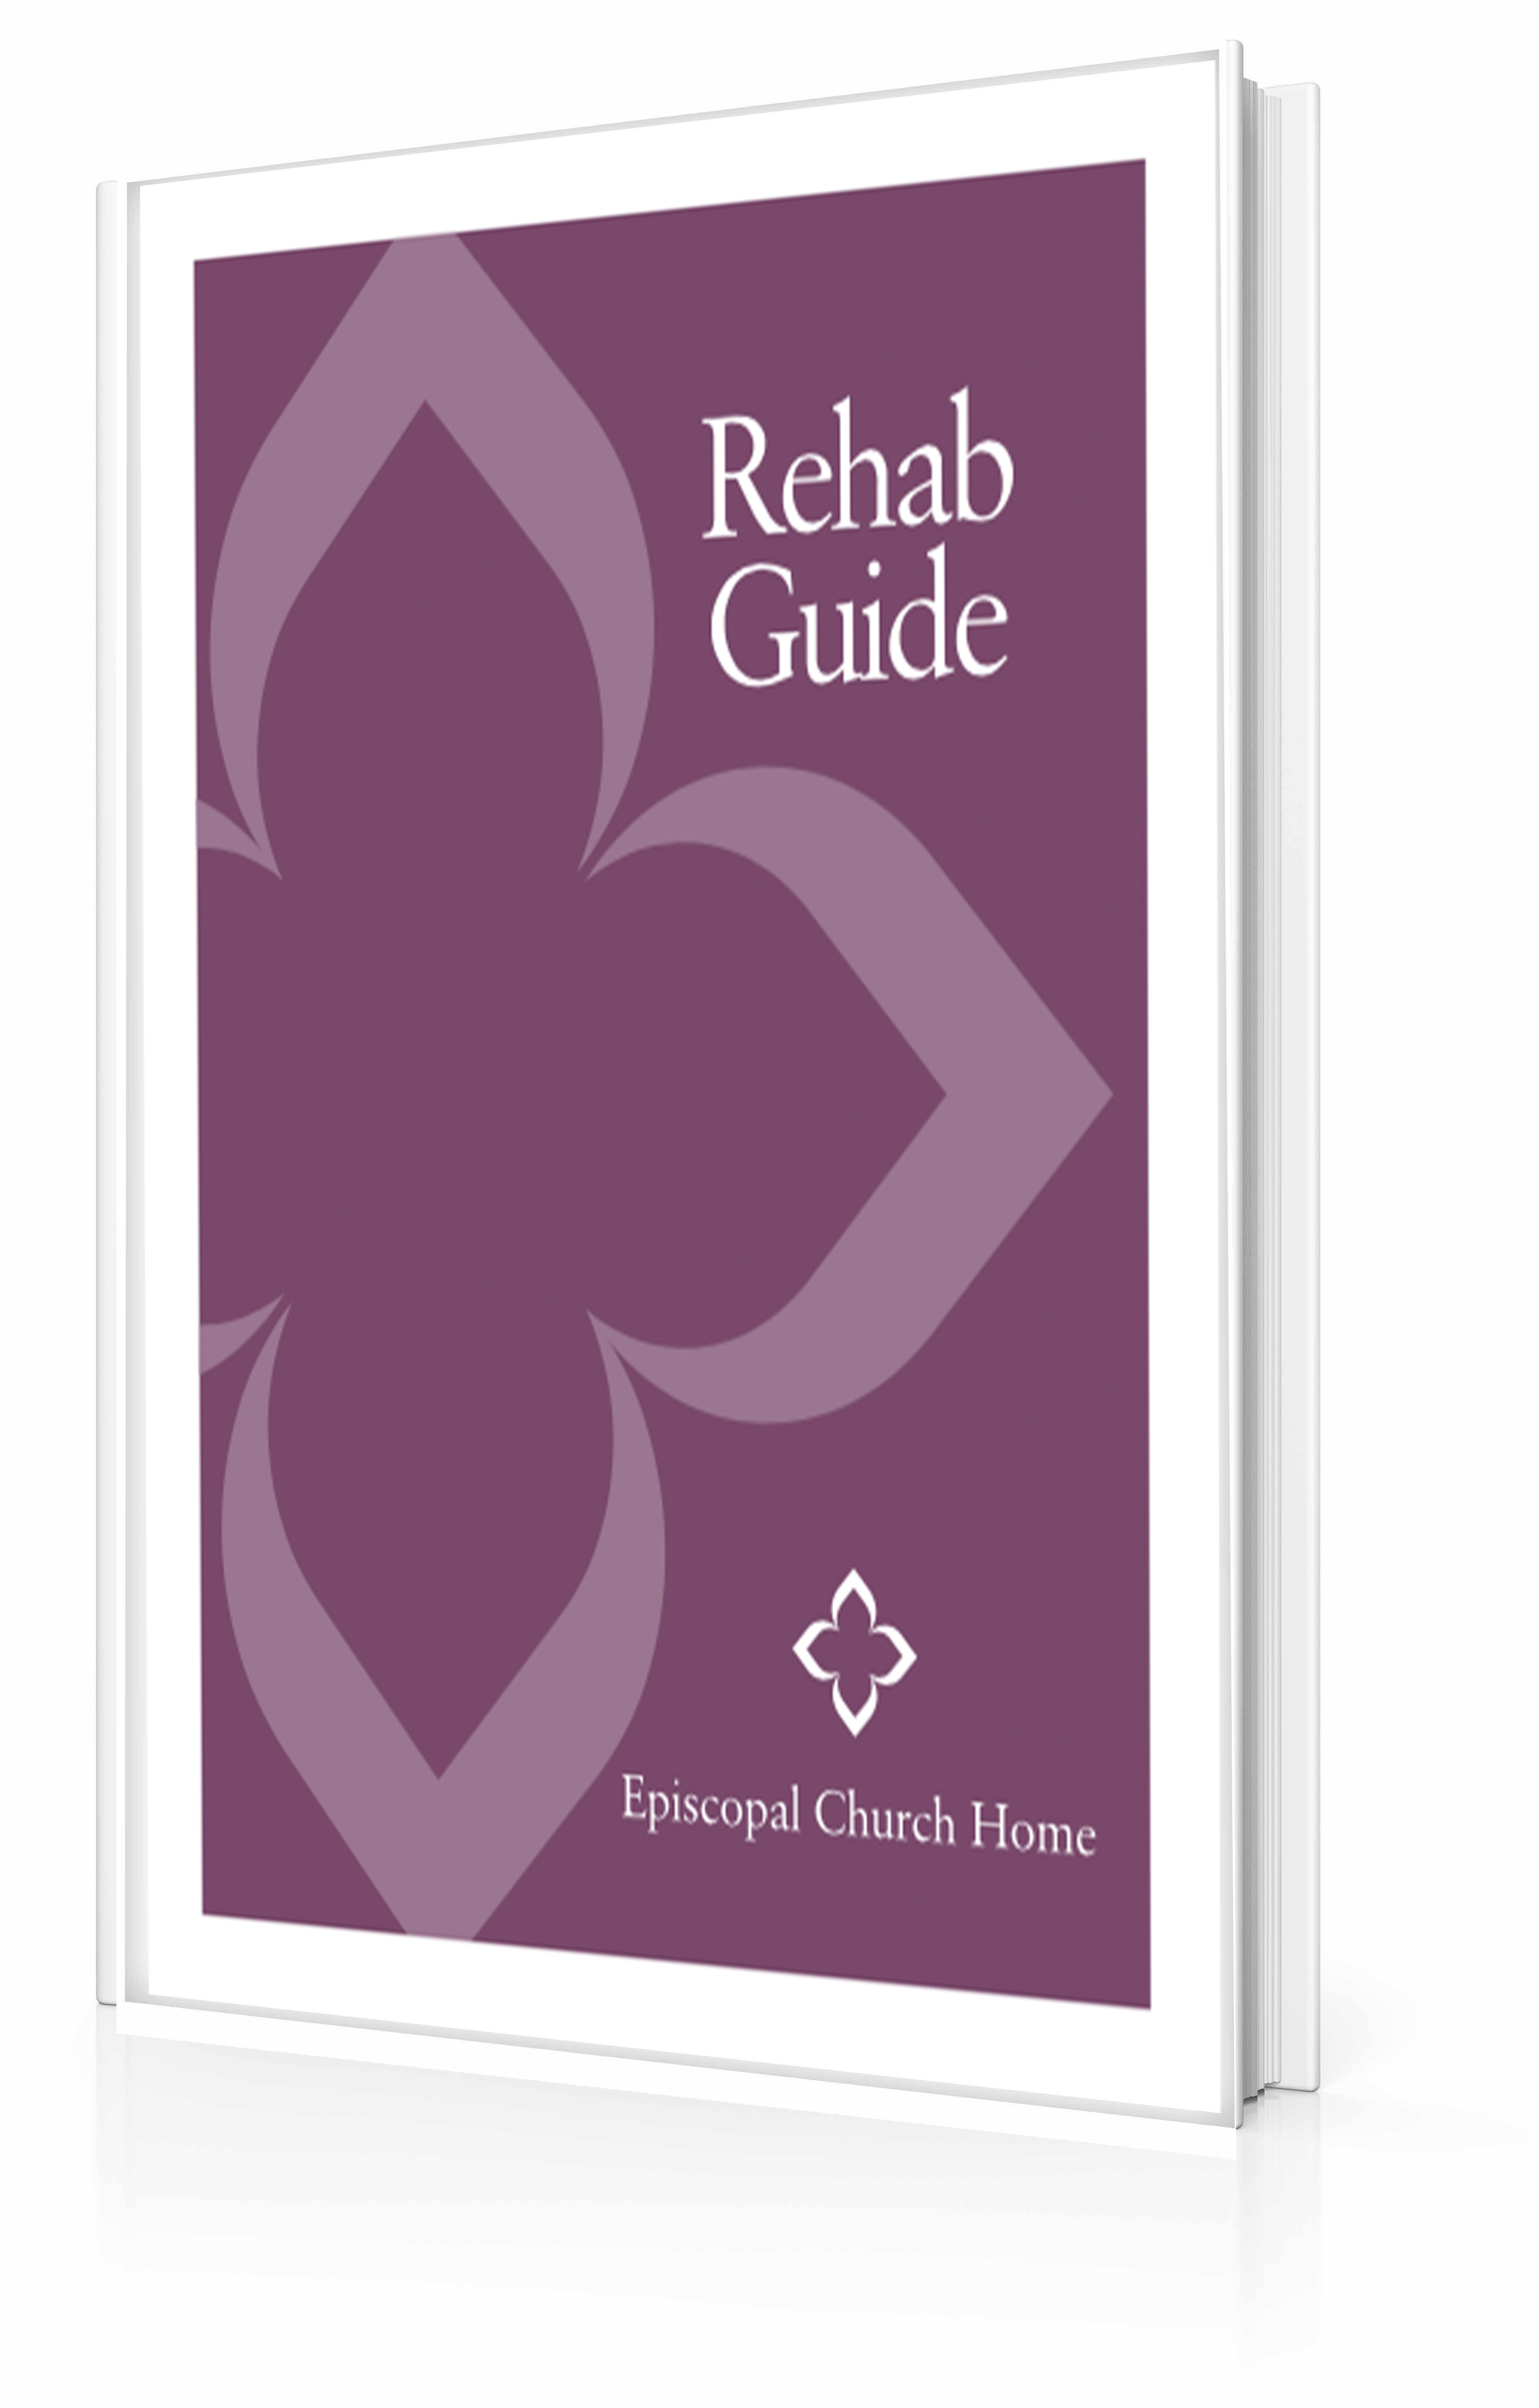 Episcopal Church Home - Short-Term Rehab Guide